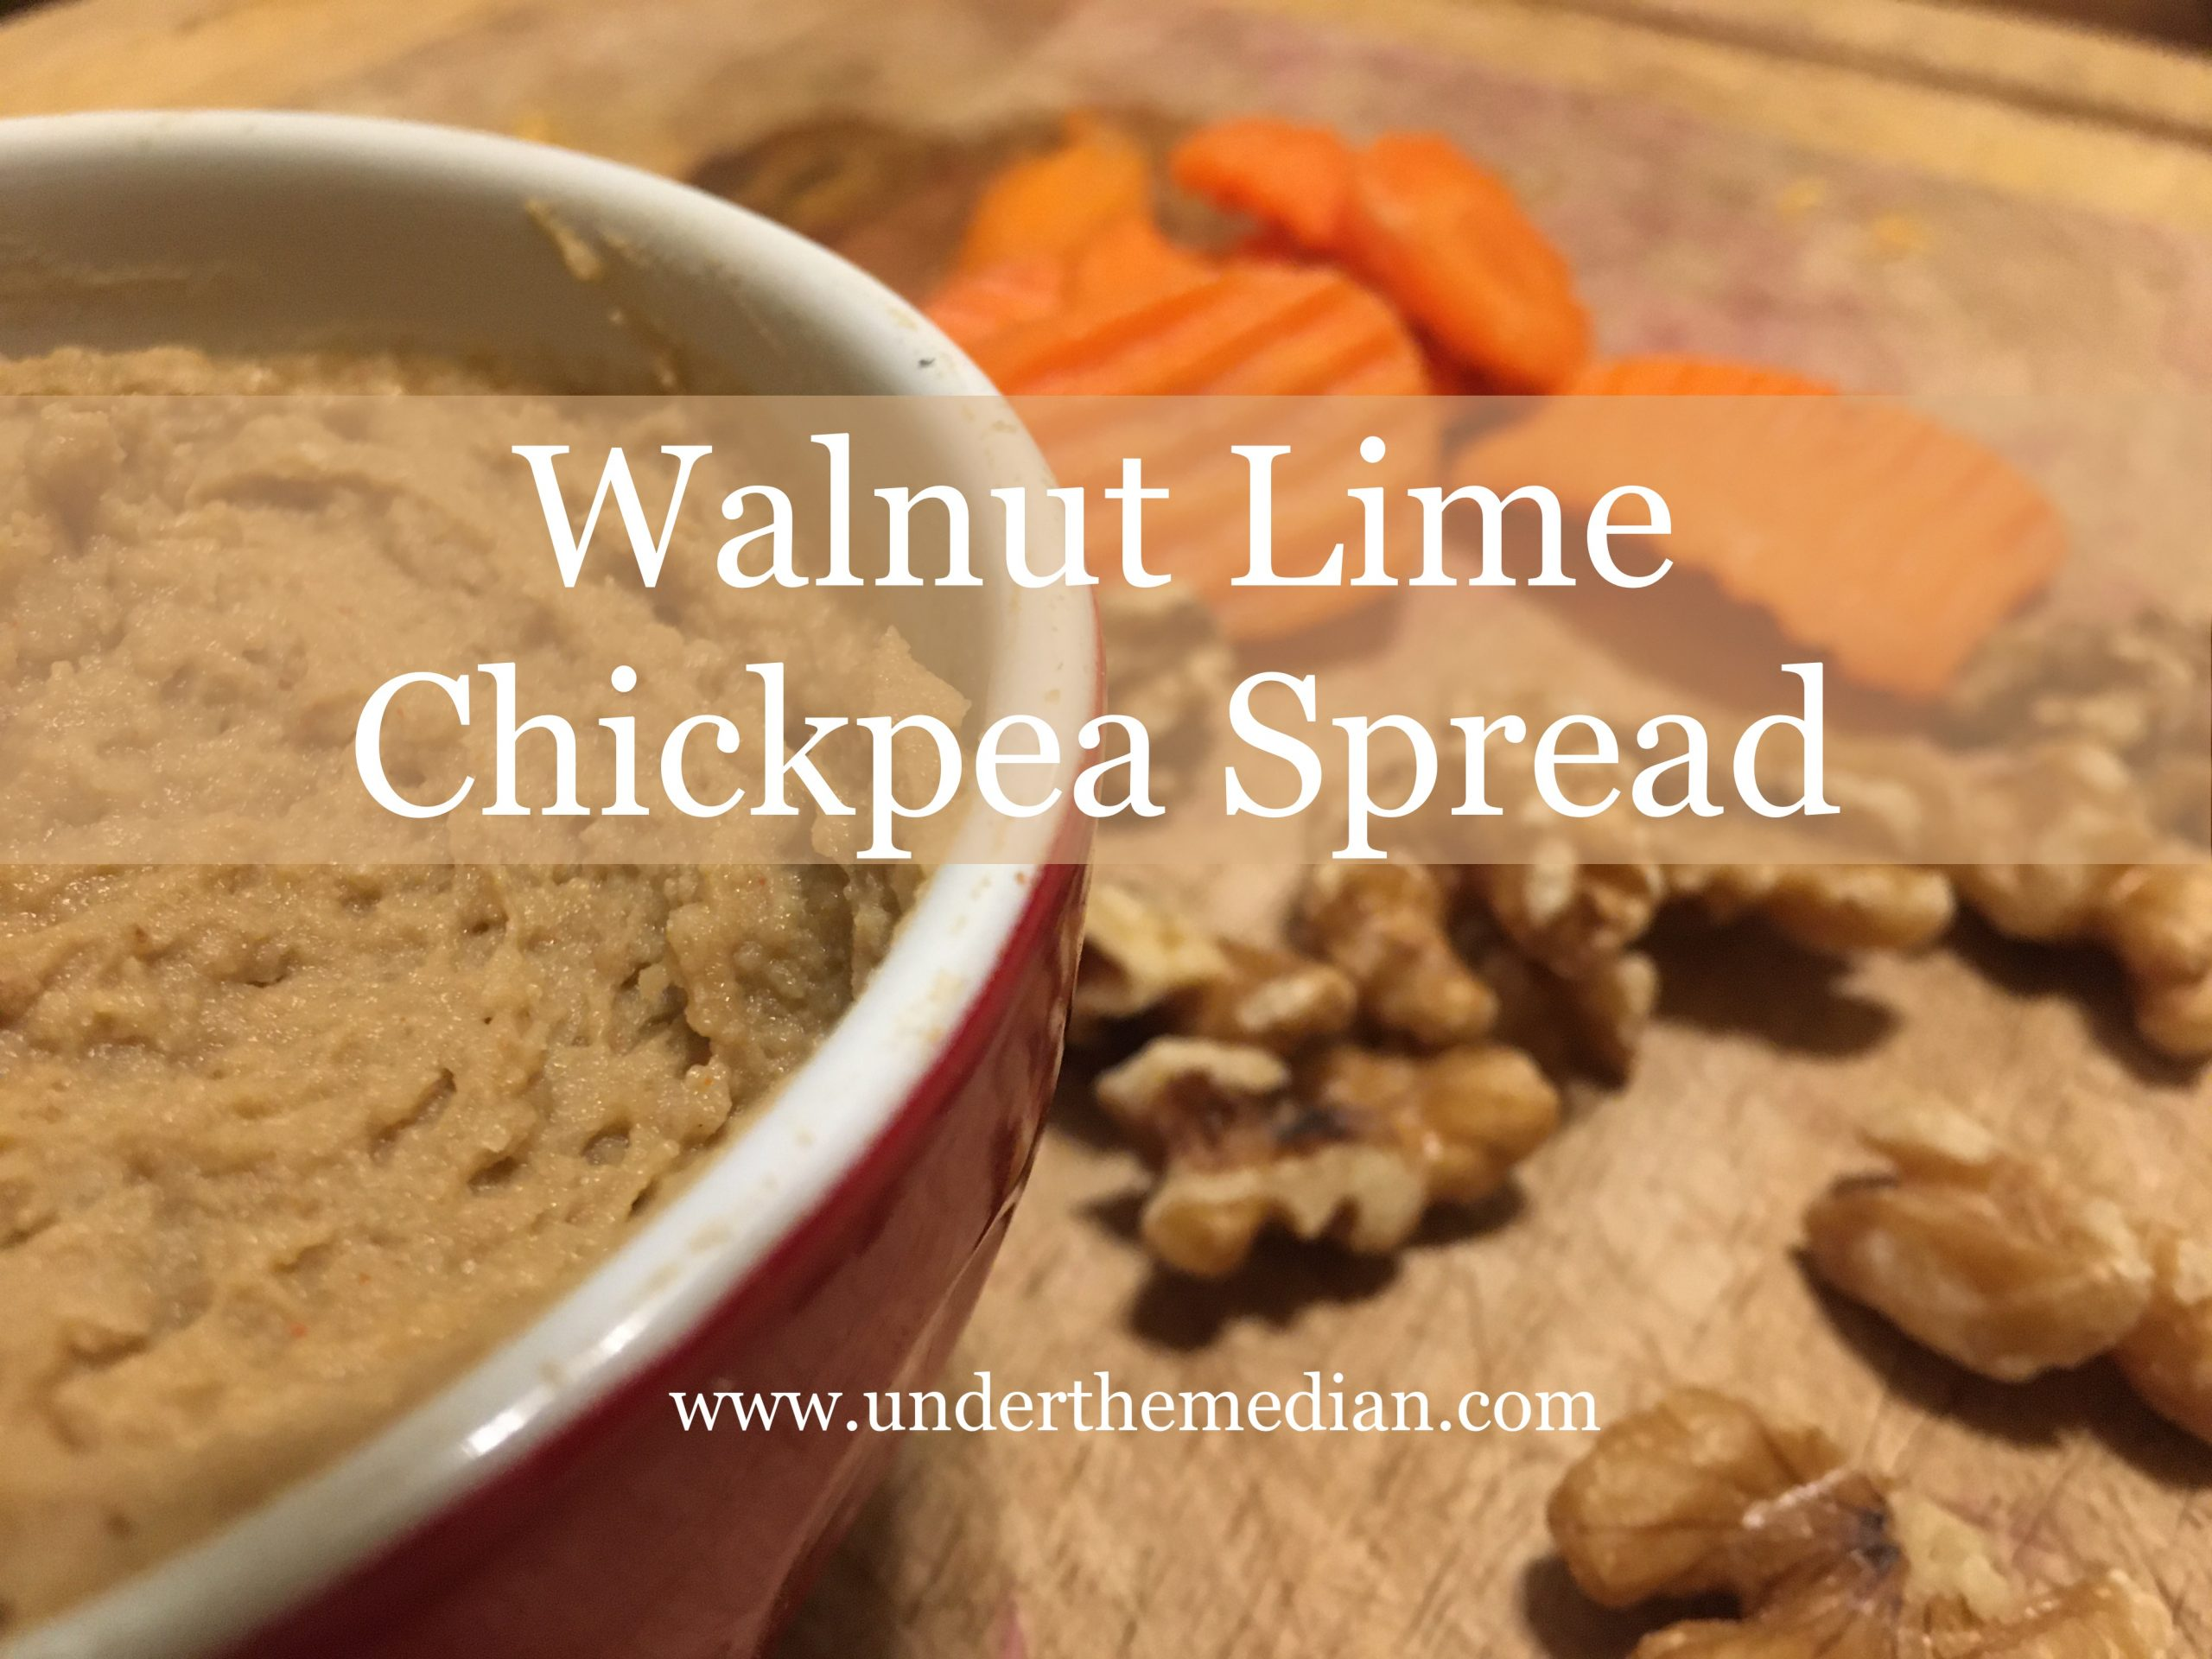 Walnut Lime Chickpea Spread